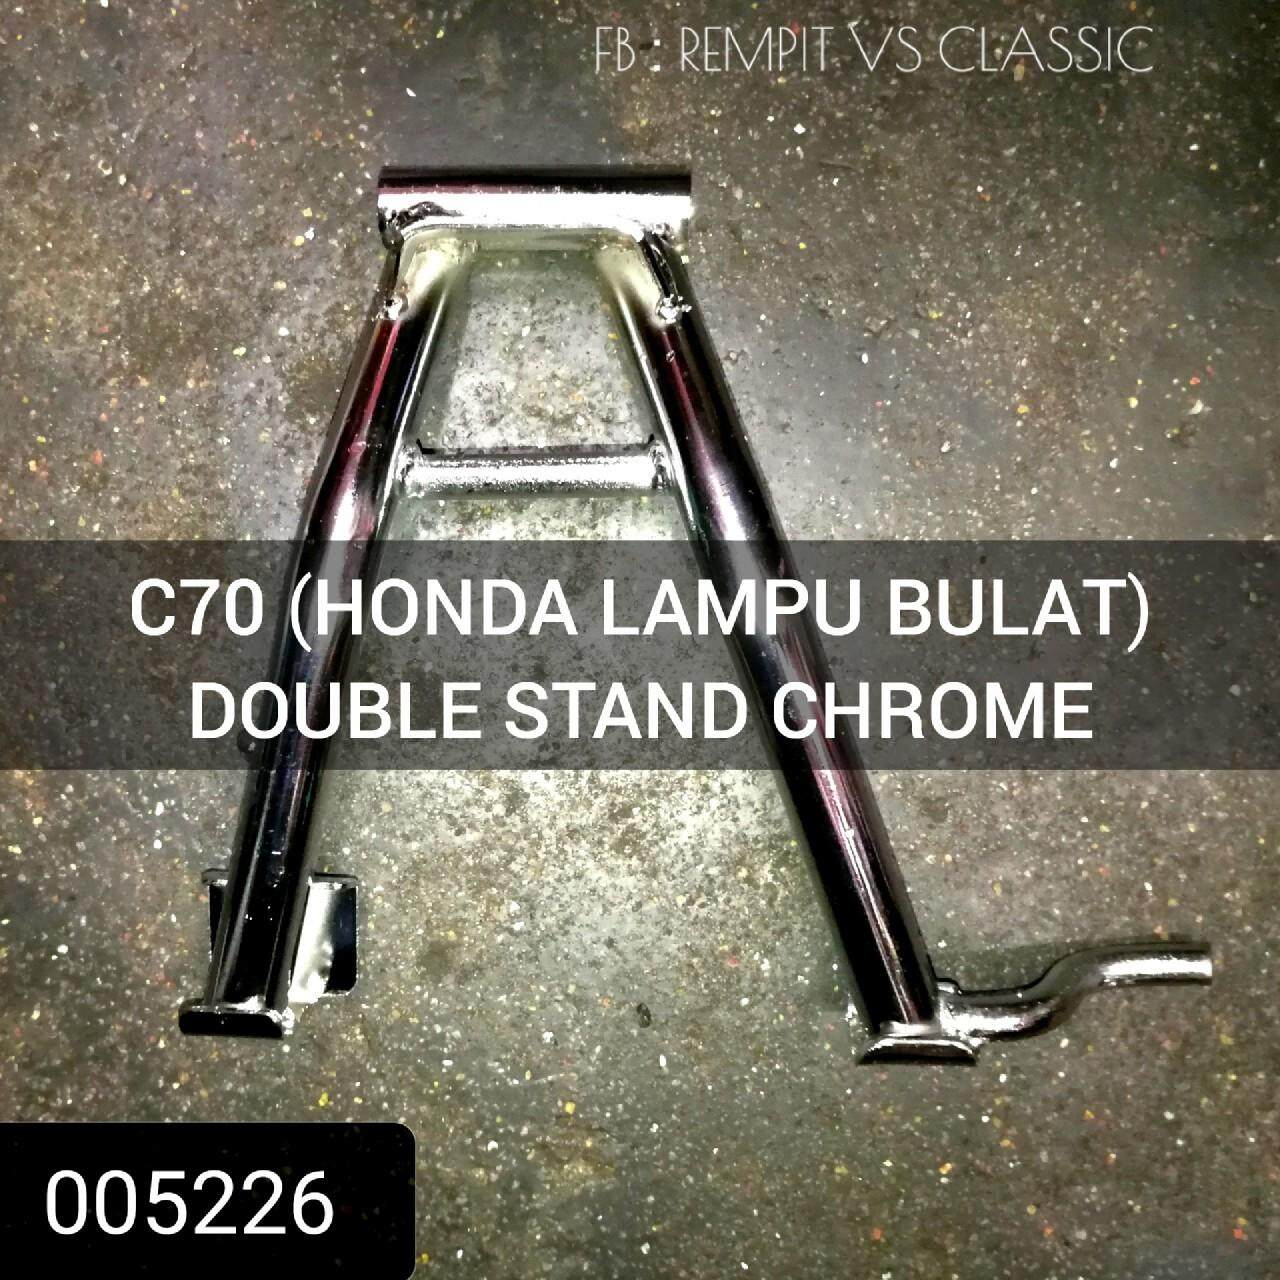 C70 (honda Lampu Bulat) Double Stand Chrome By Rempit Vs Classic.